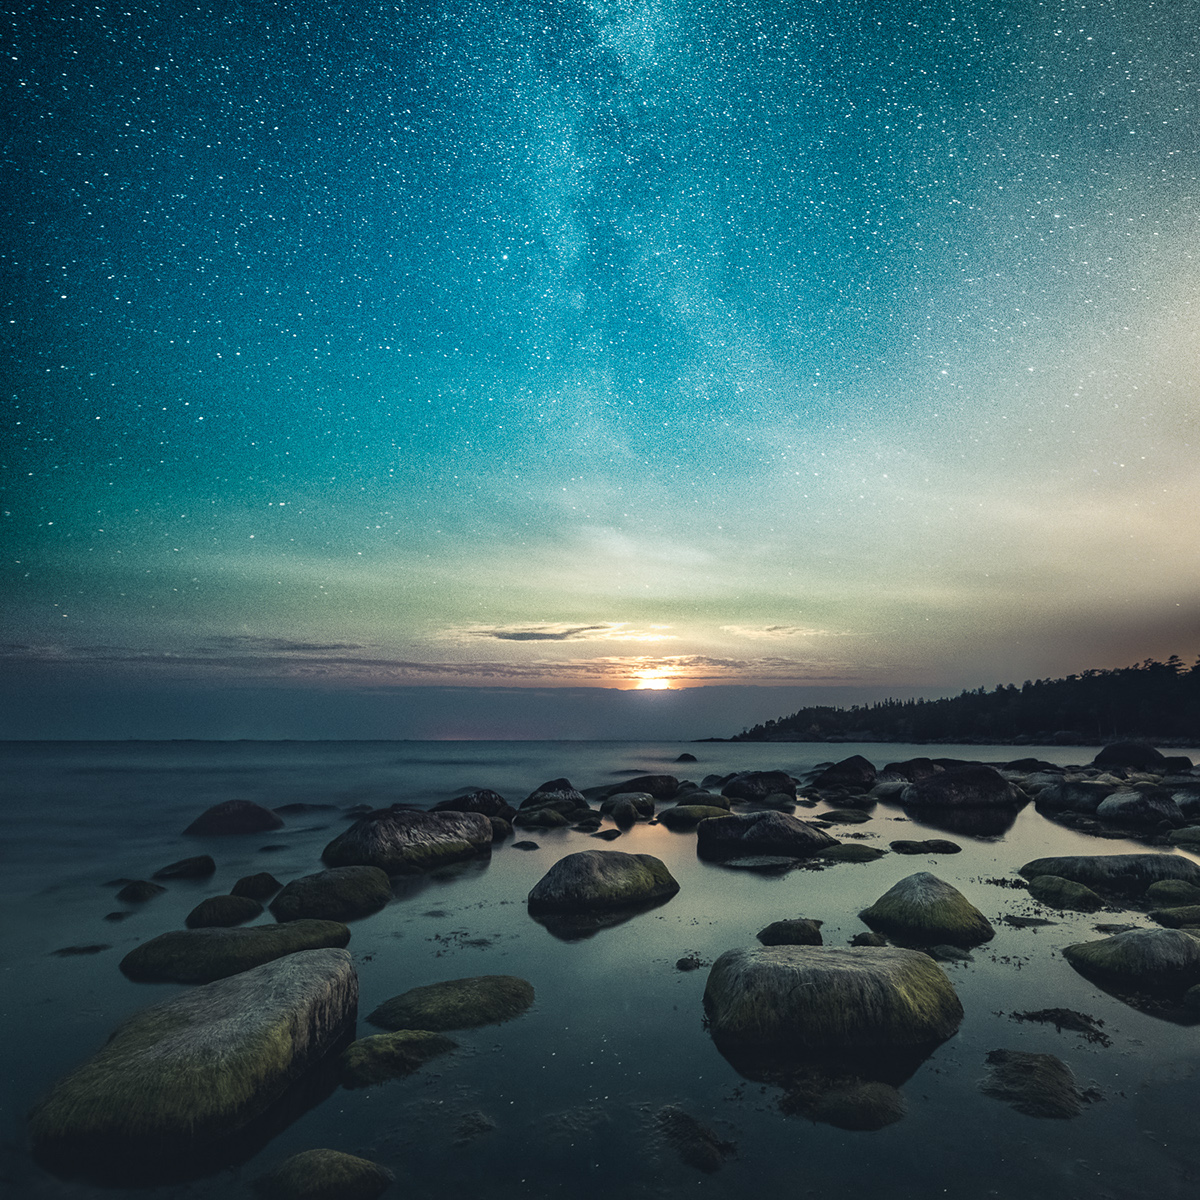 Mikko Lagerstedt - Invisible by day - 4